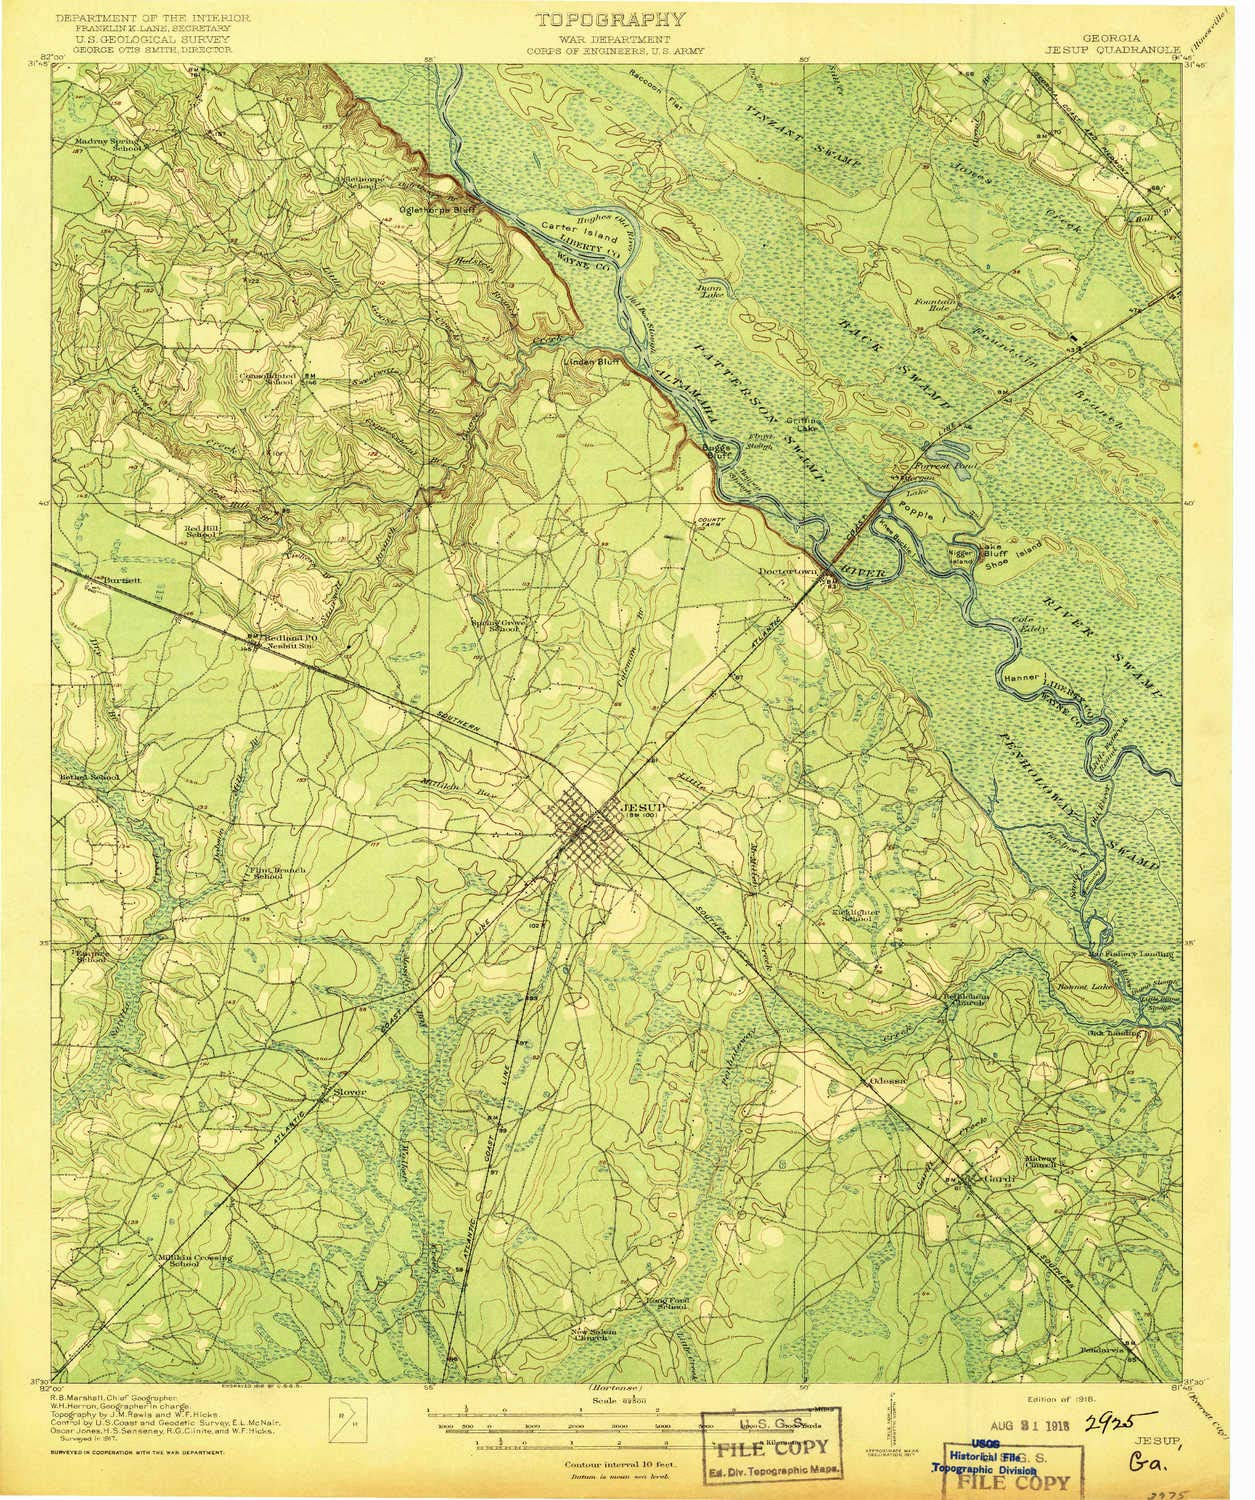 Map Of Jesup Georgia.Amazon Com Yellowmaps Jesup Ga Topo Map 1 62500 Scale 15 X 15